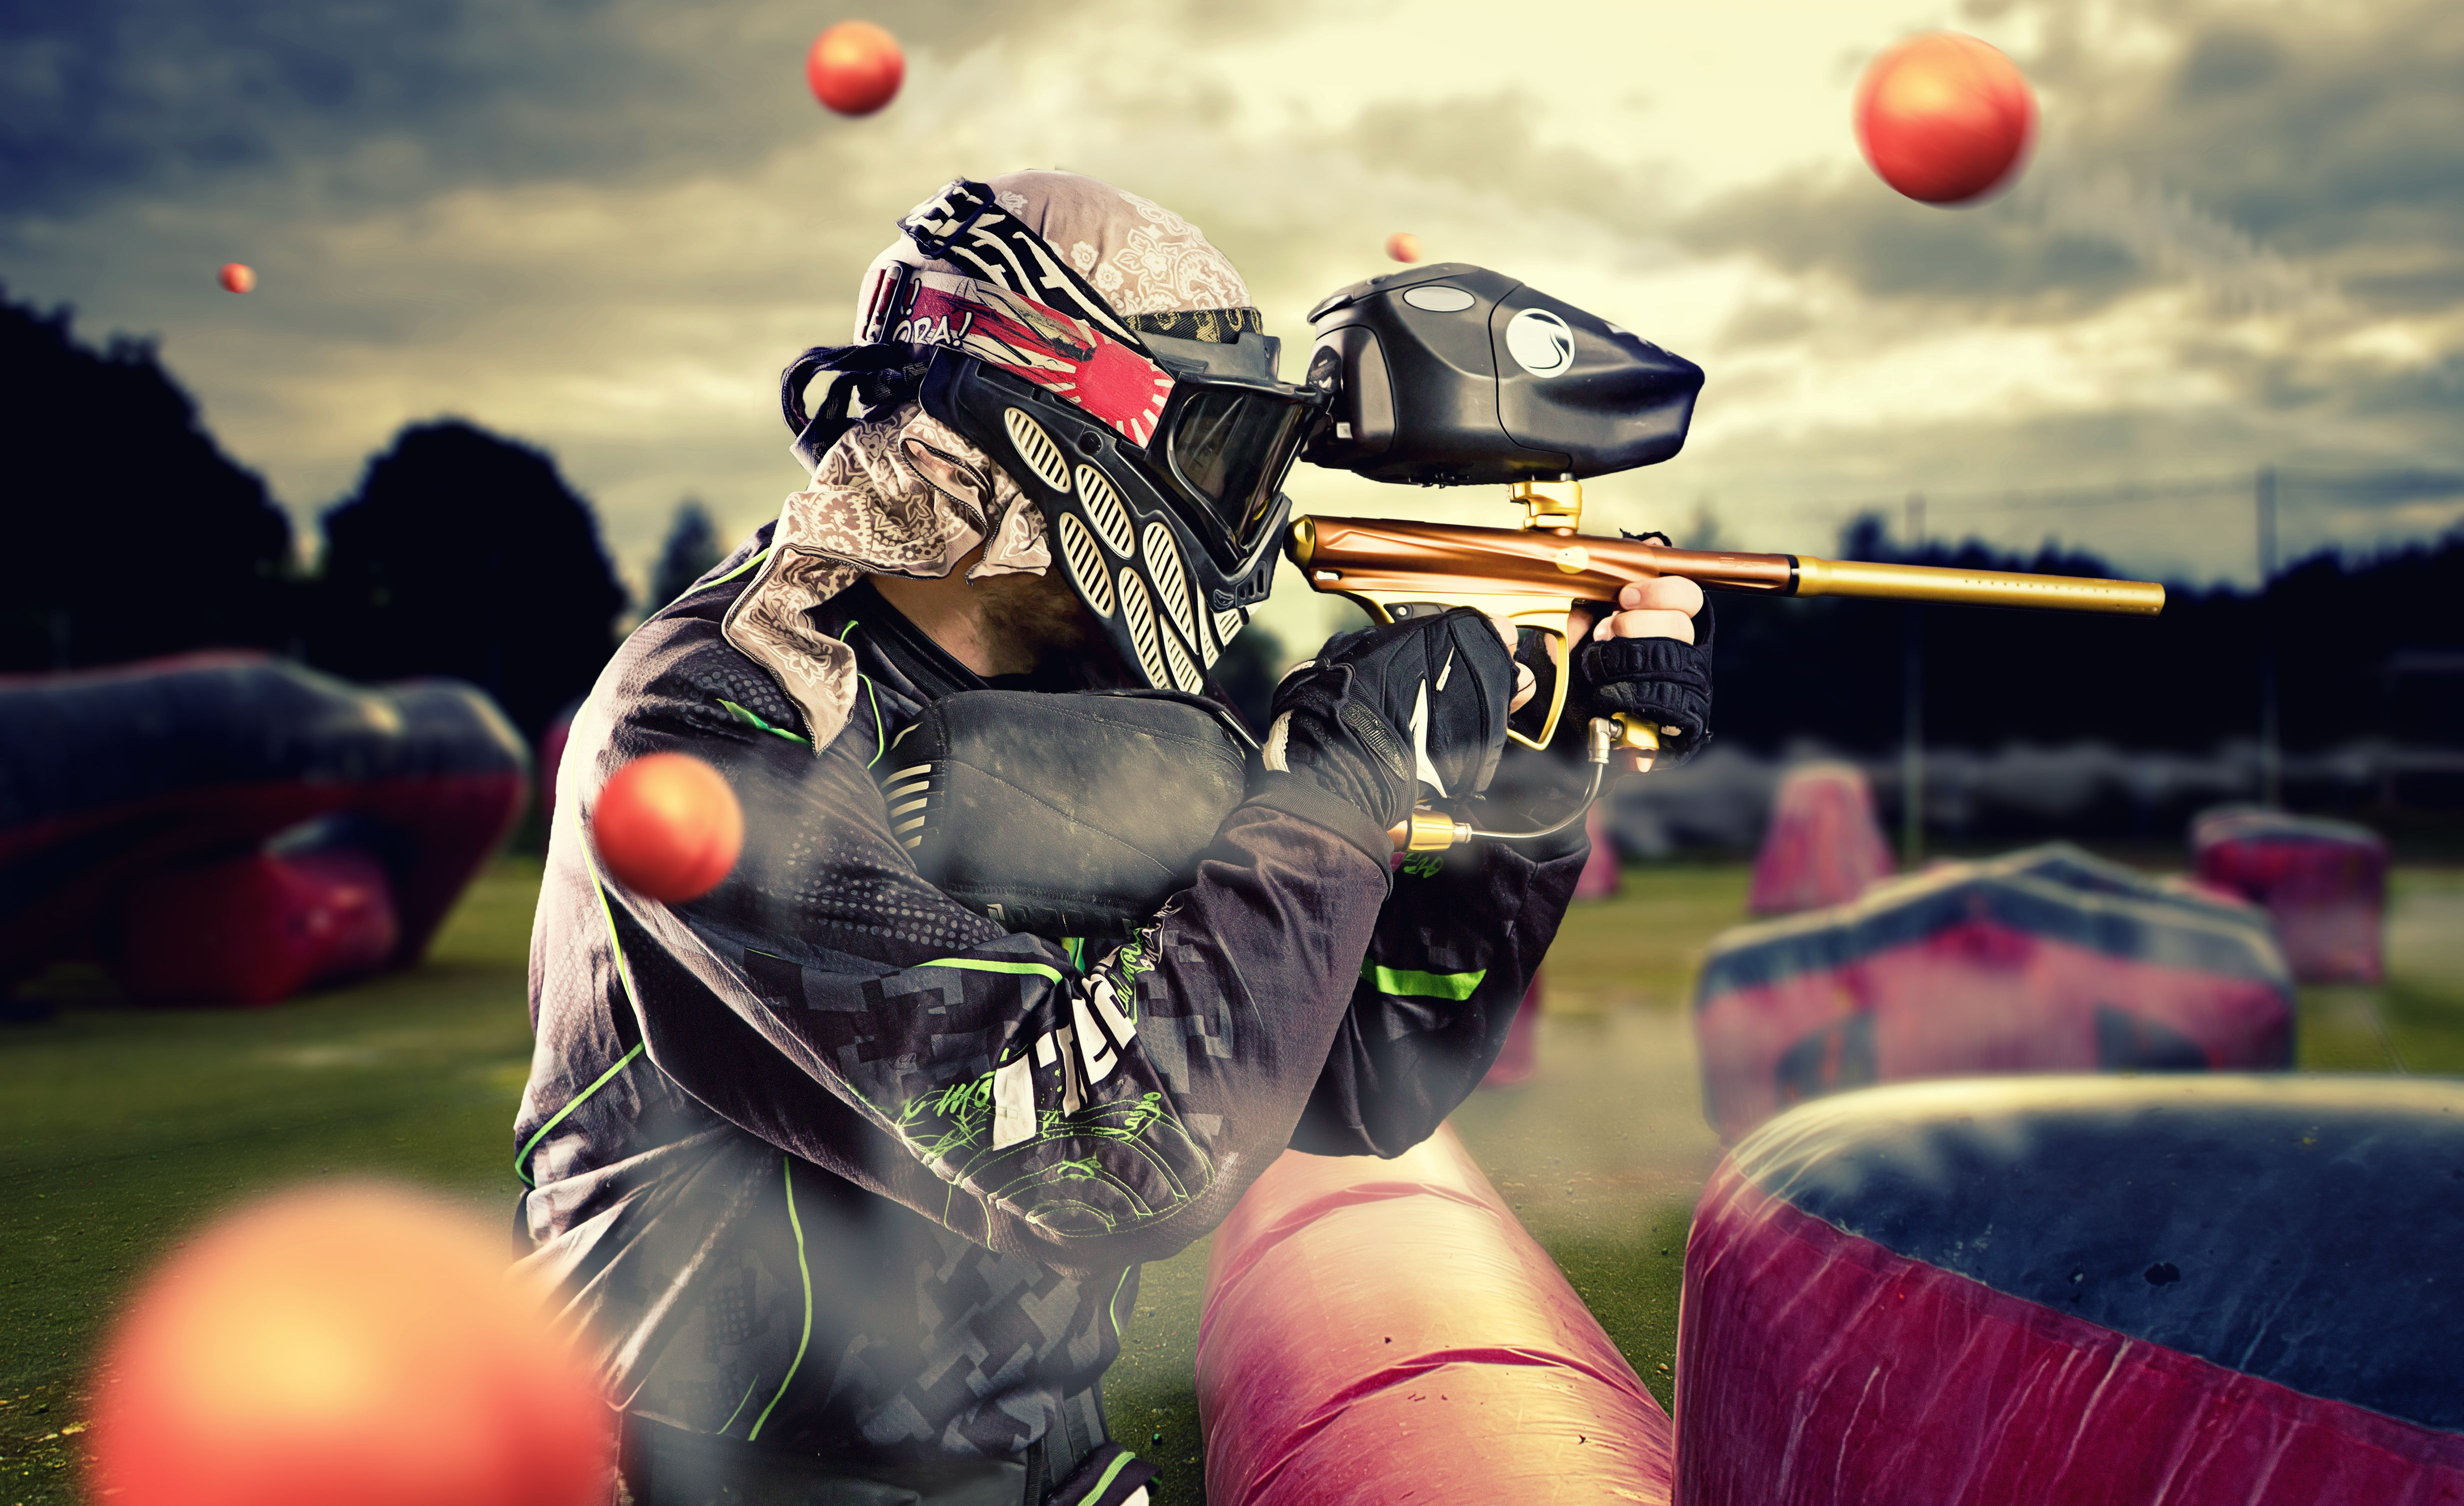 Paintball Wallpaper 37 Paintball High Quality Backgrounds Ll Gl Paintball